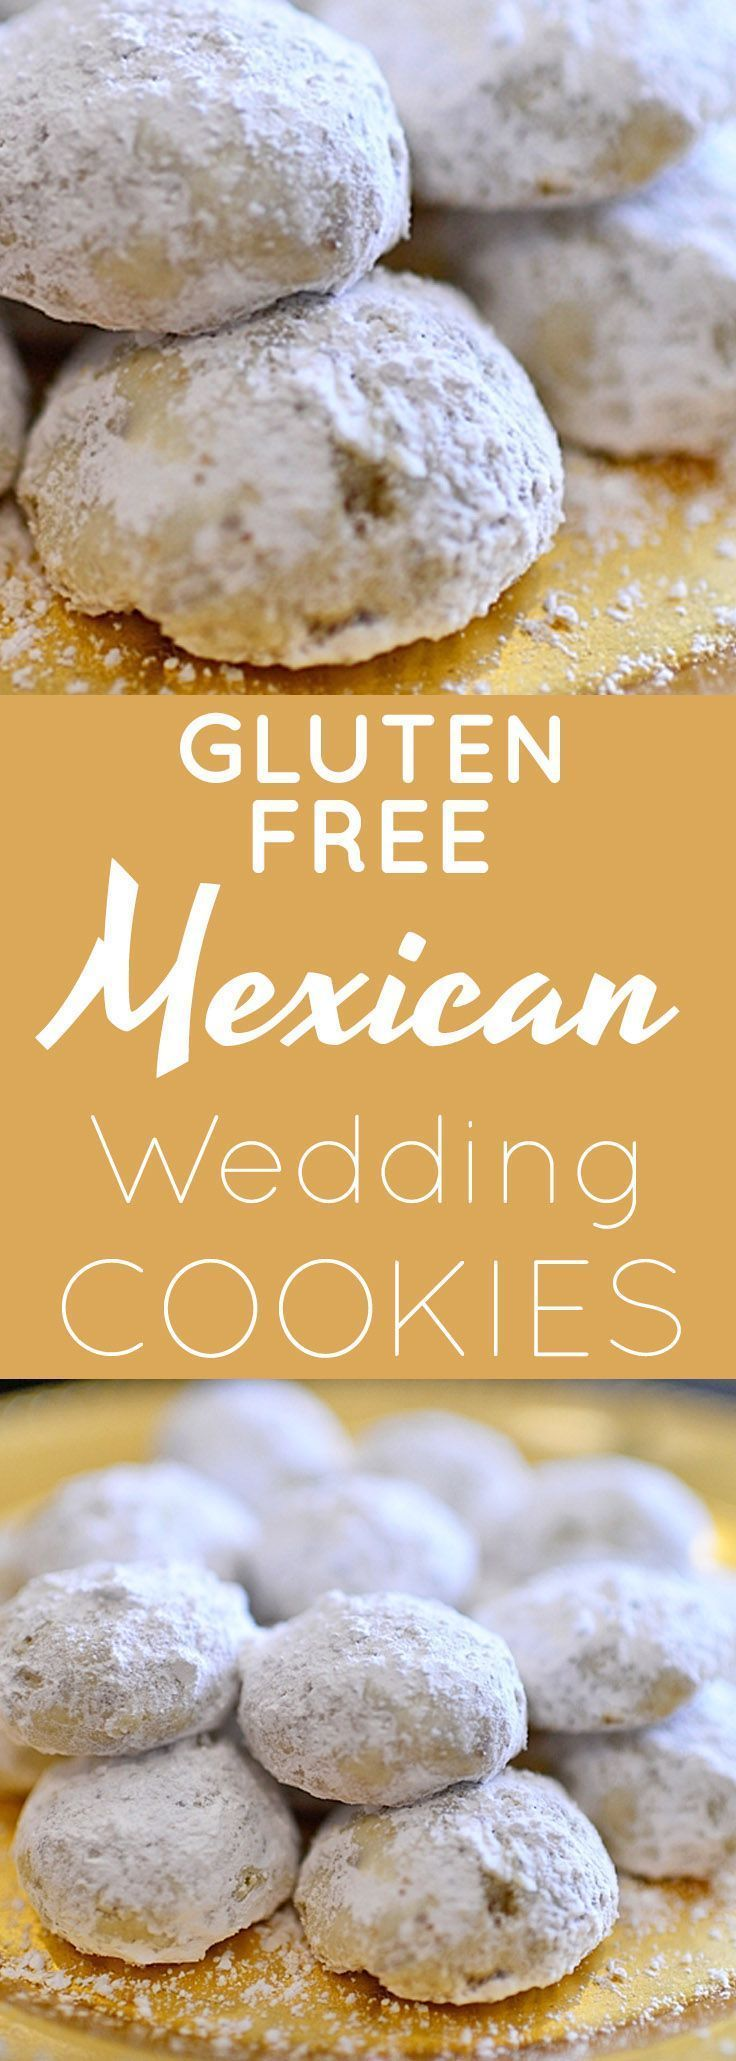 Mexican Wedding Cookies Recipe Gluten free cookie